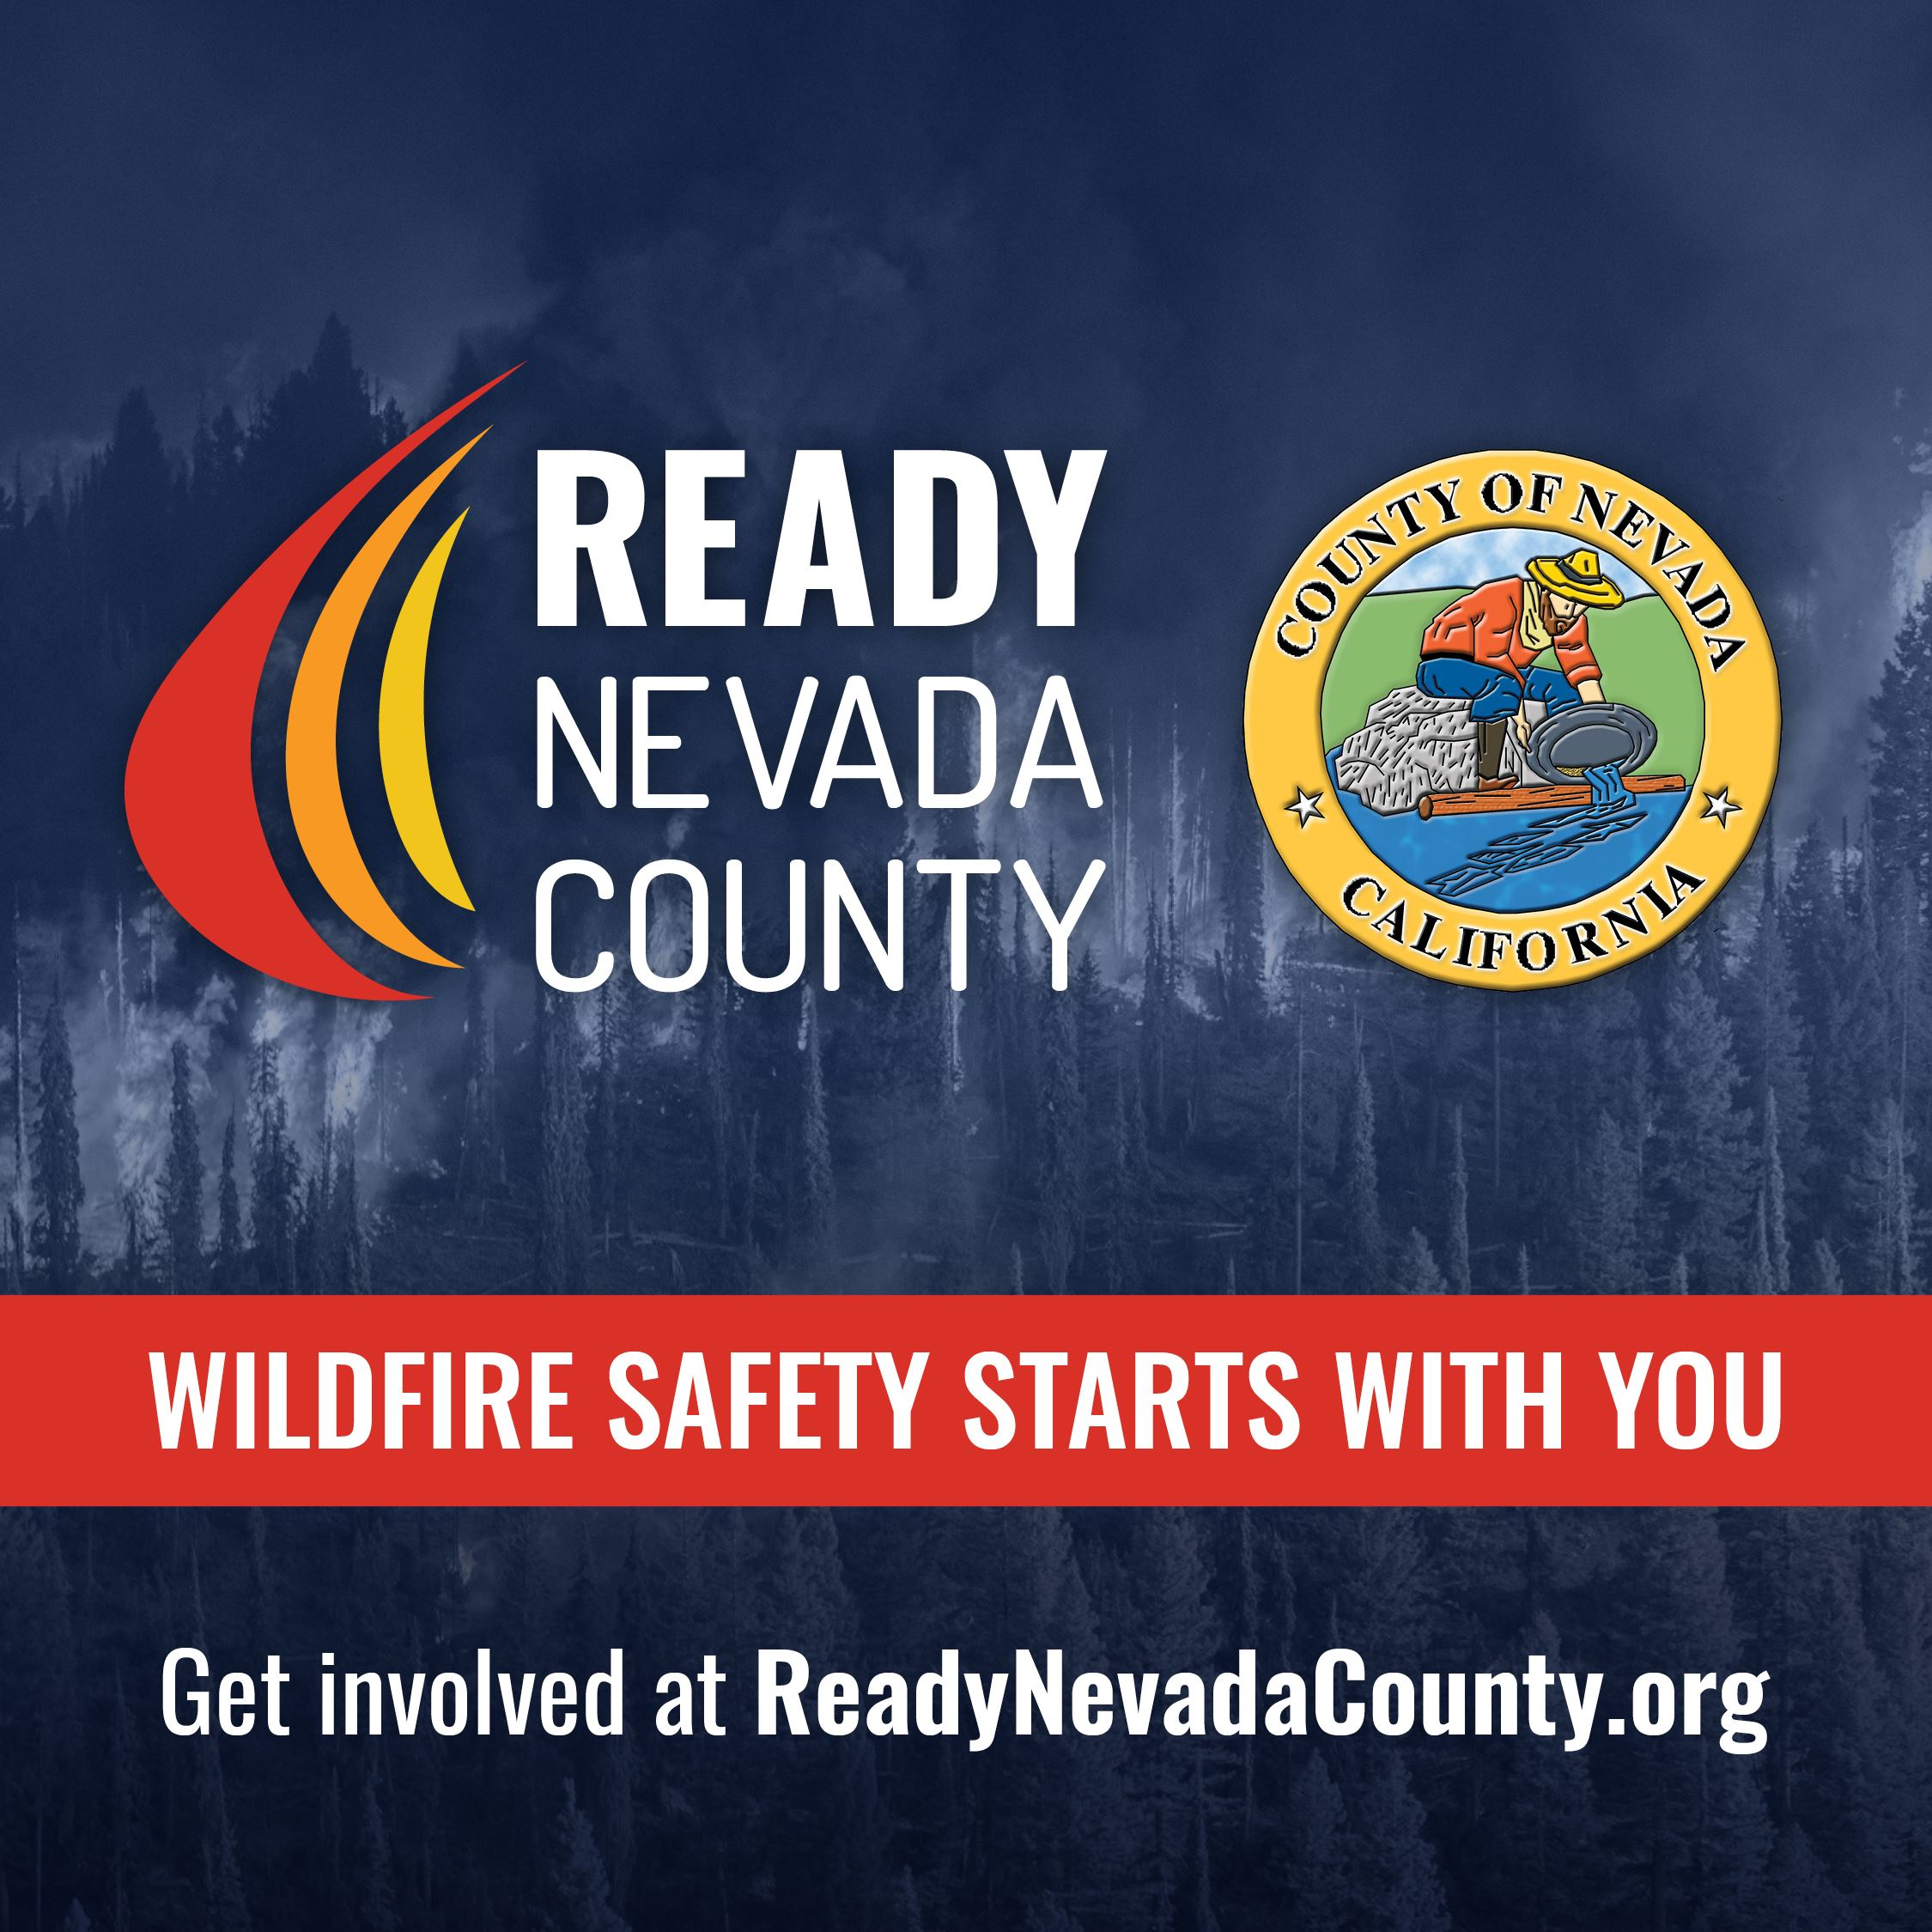 Ready Nevada County Logo, Wildfire Starts with You